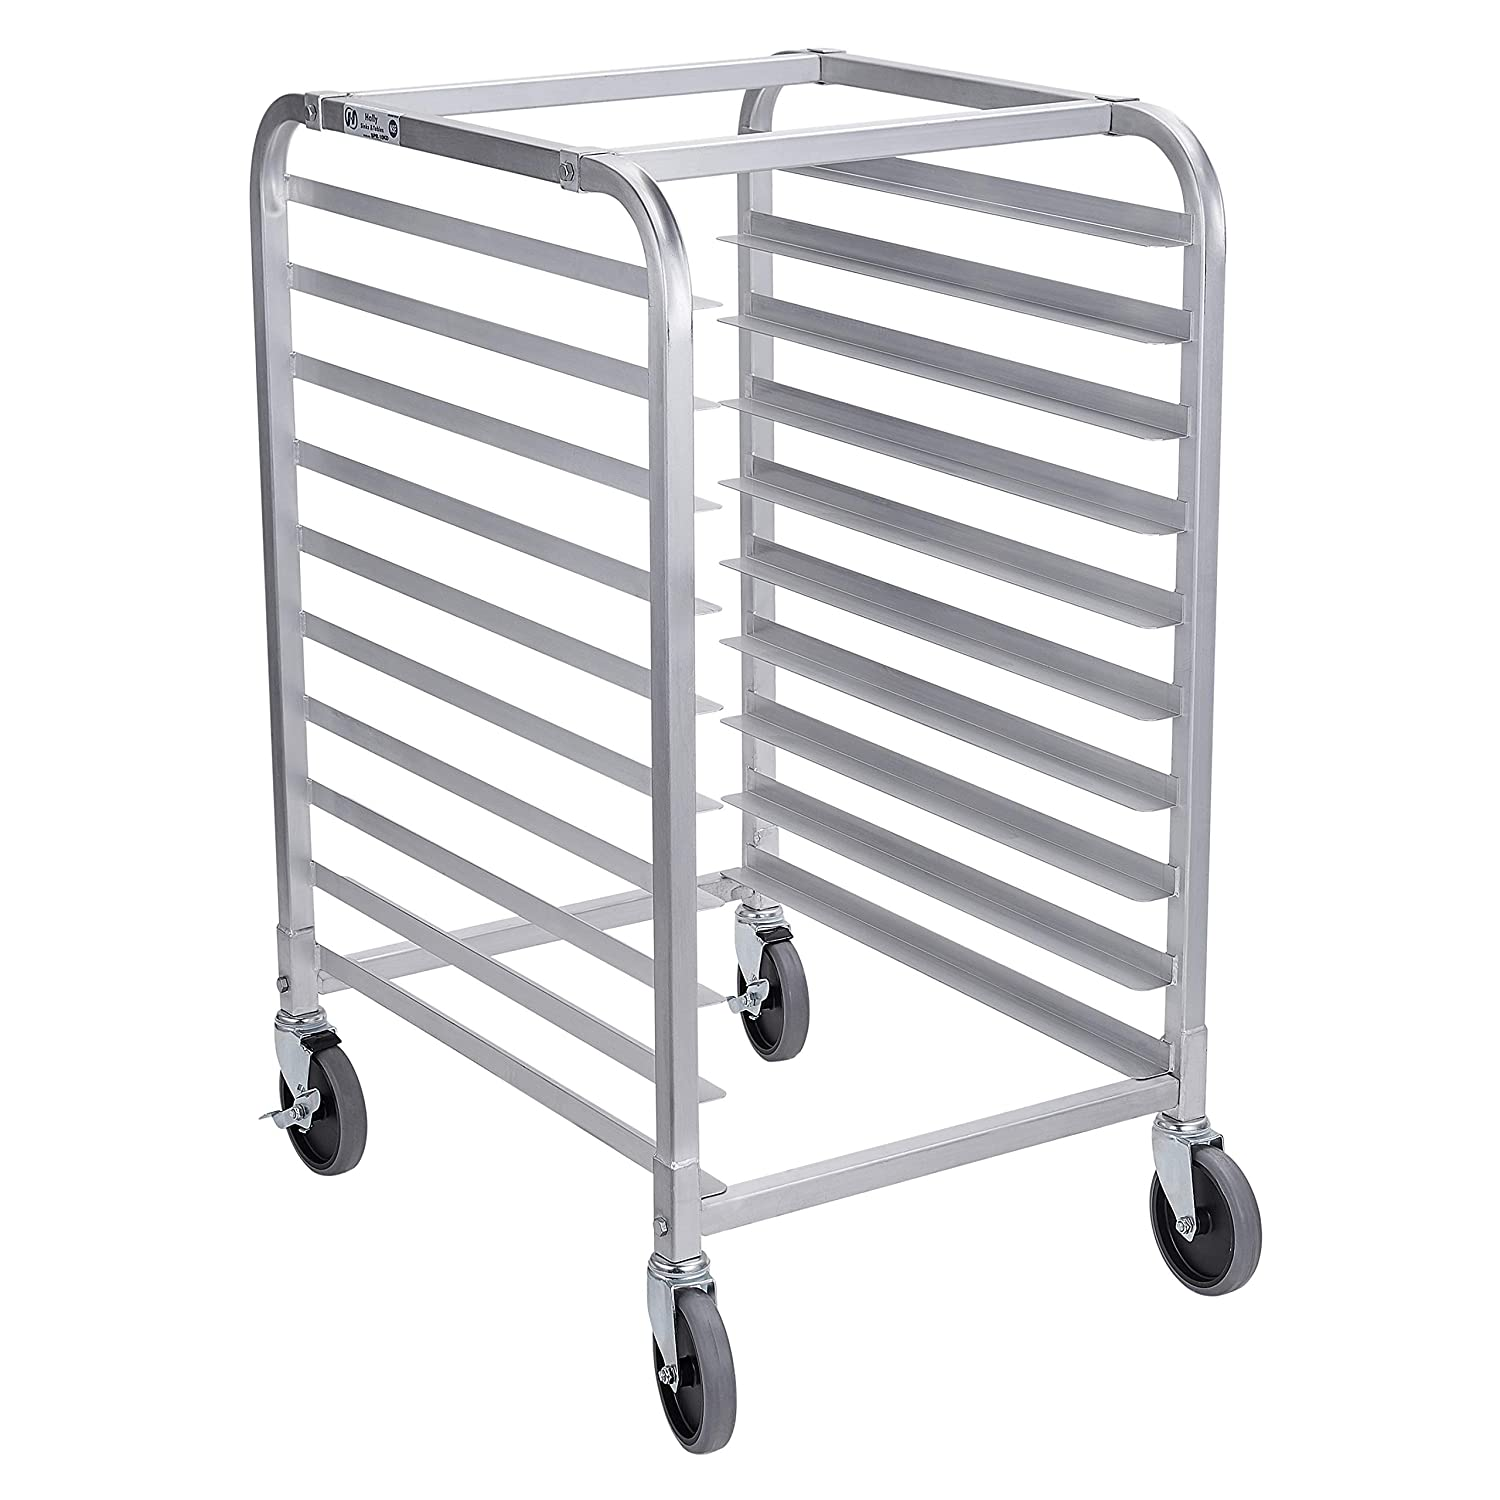 """Bun Pan Rack 10 Tier with Wheels, Commercial Bakery Racking of Aluminum for Full & Half Sheet - Kitchen, Restaurant, Cafeteria, Pizzeria, Hotel and Home, 26"""" L x 20"""" W x 38"""" H"""